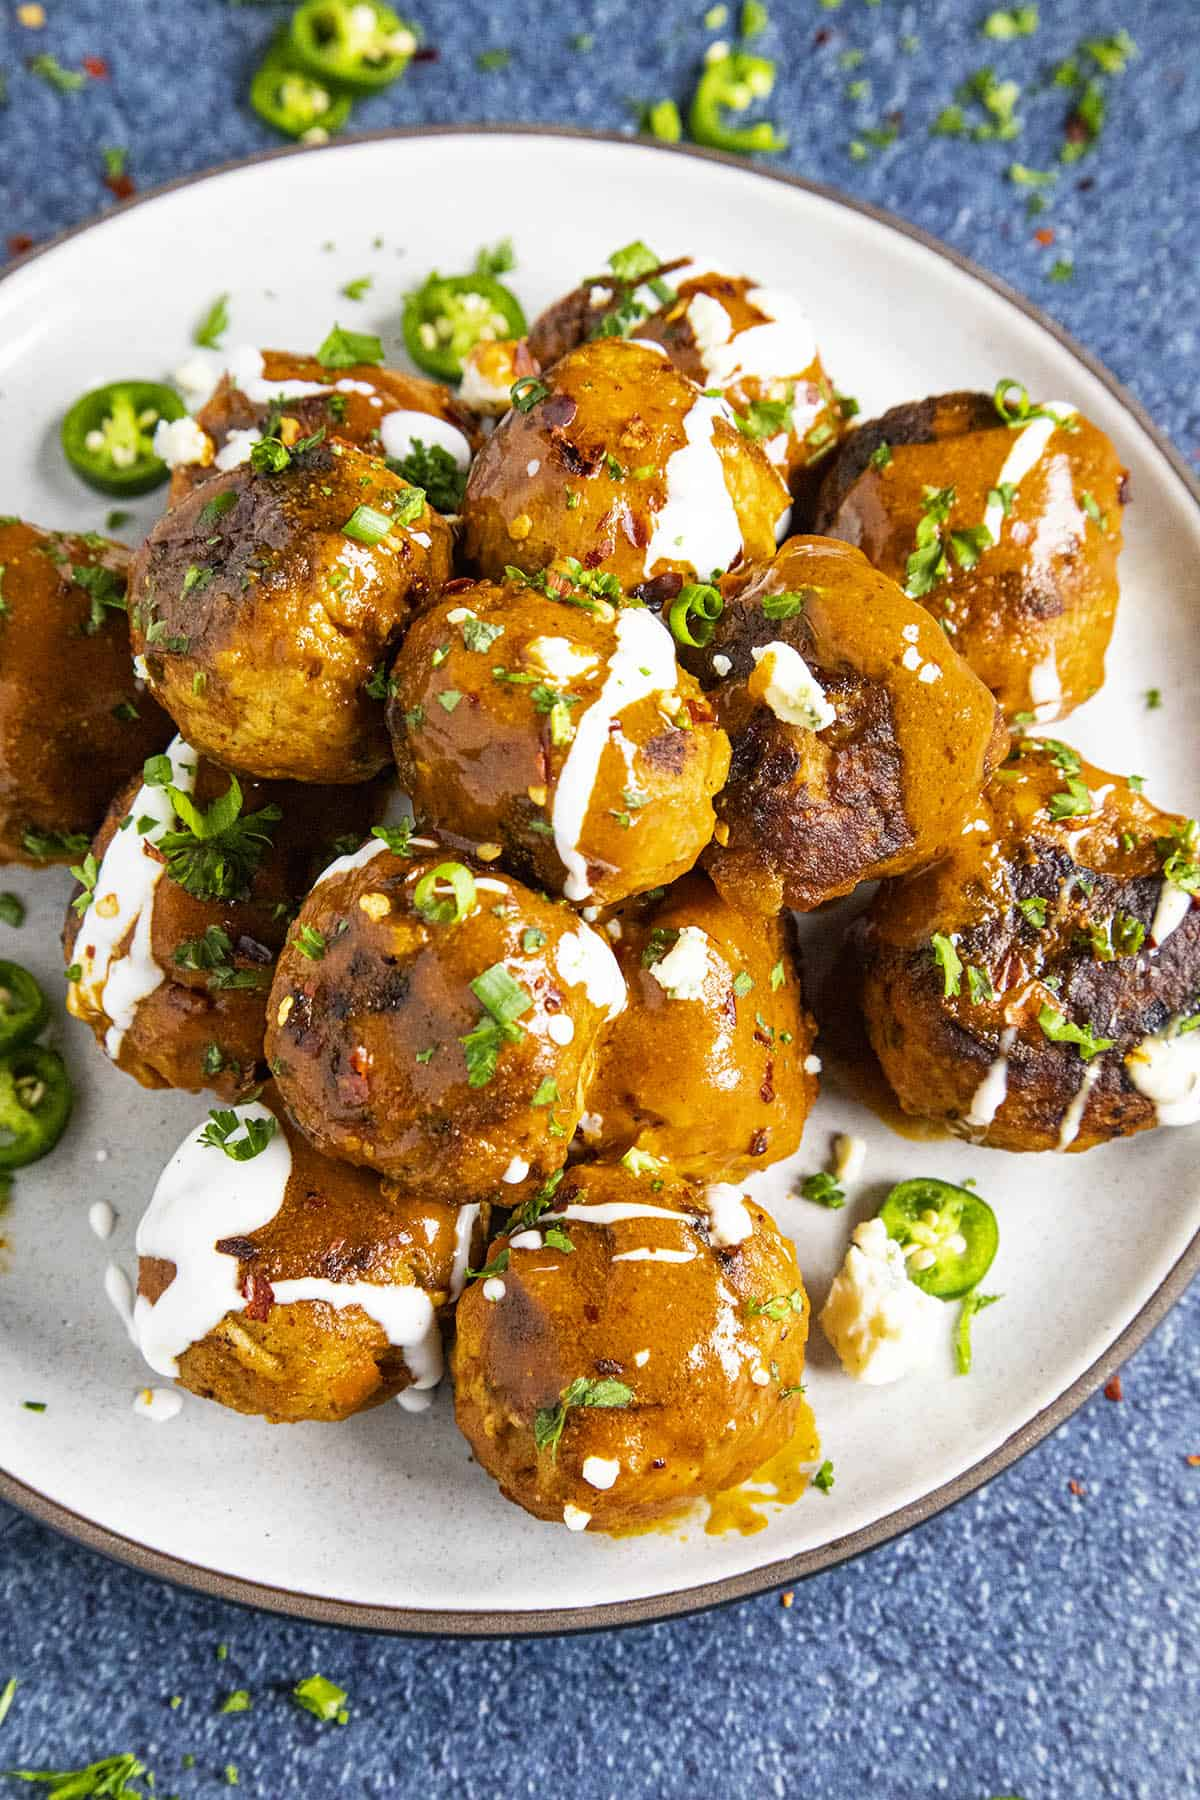 Saucy Buffalo Chicken Meatballs on a plate, ready to eat